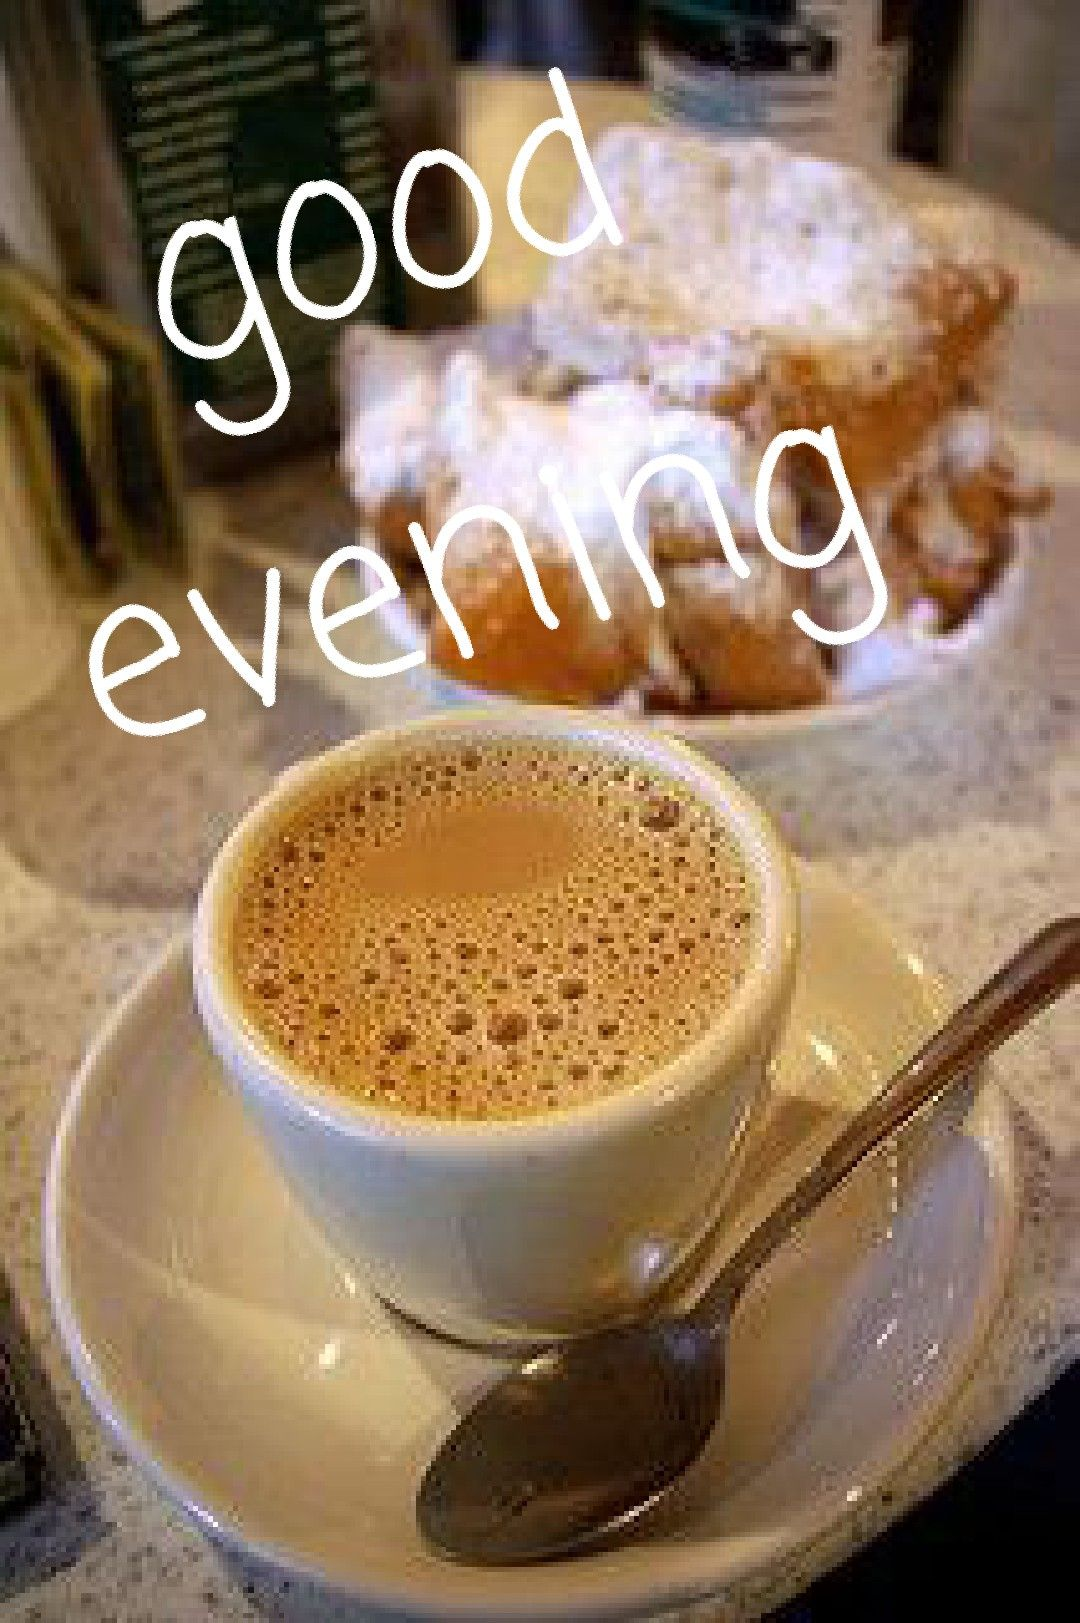 Good evening good wishes evening quotes good evening wishes